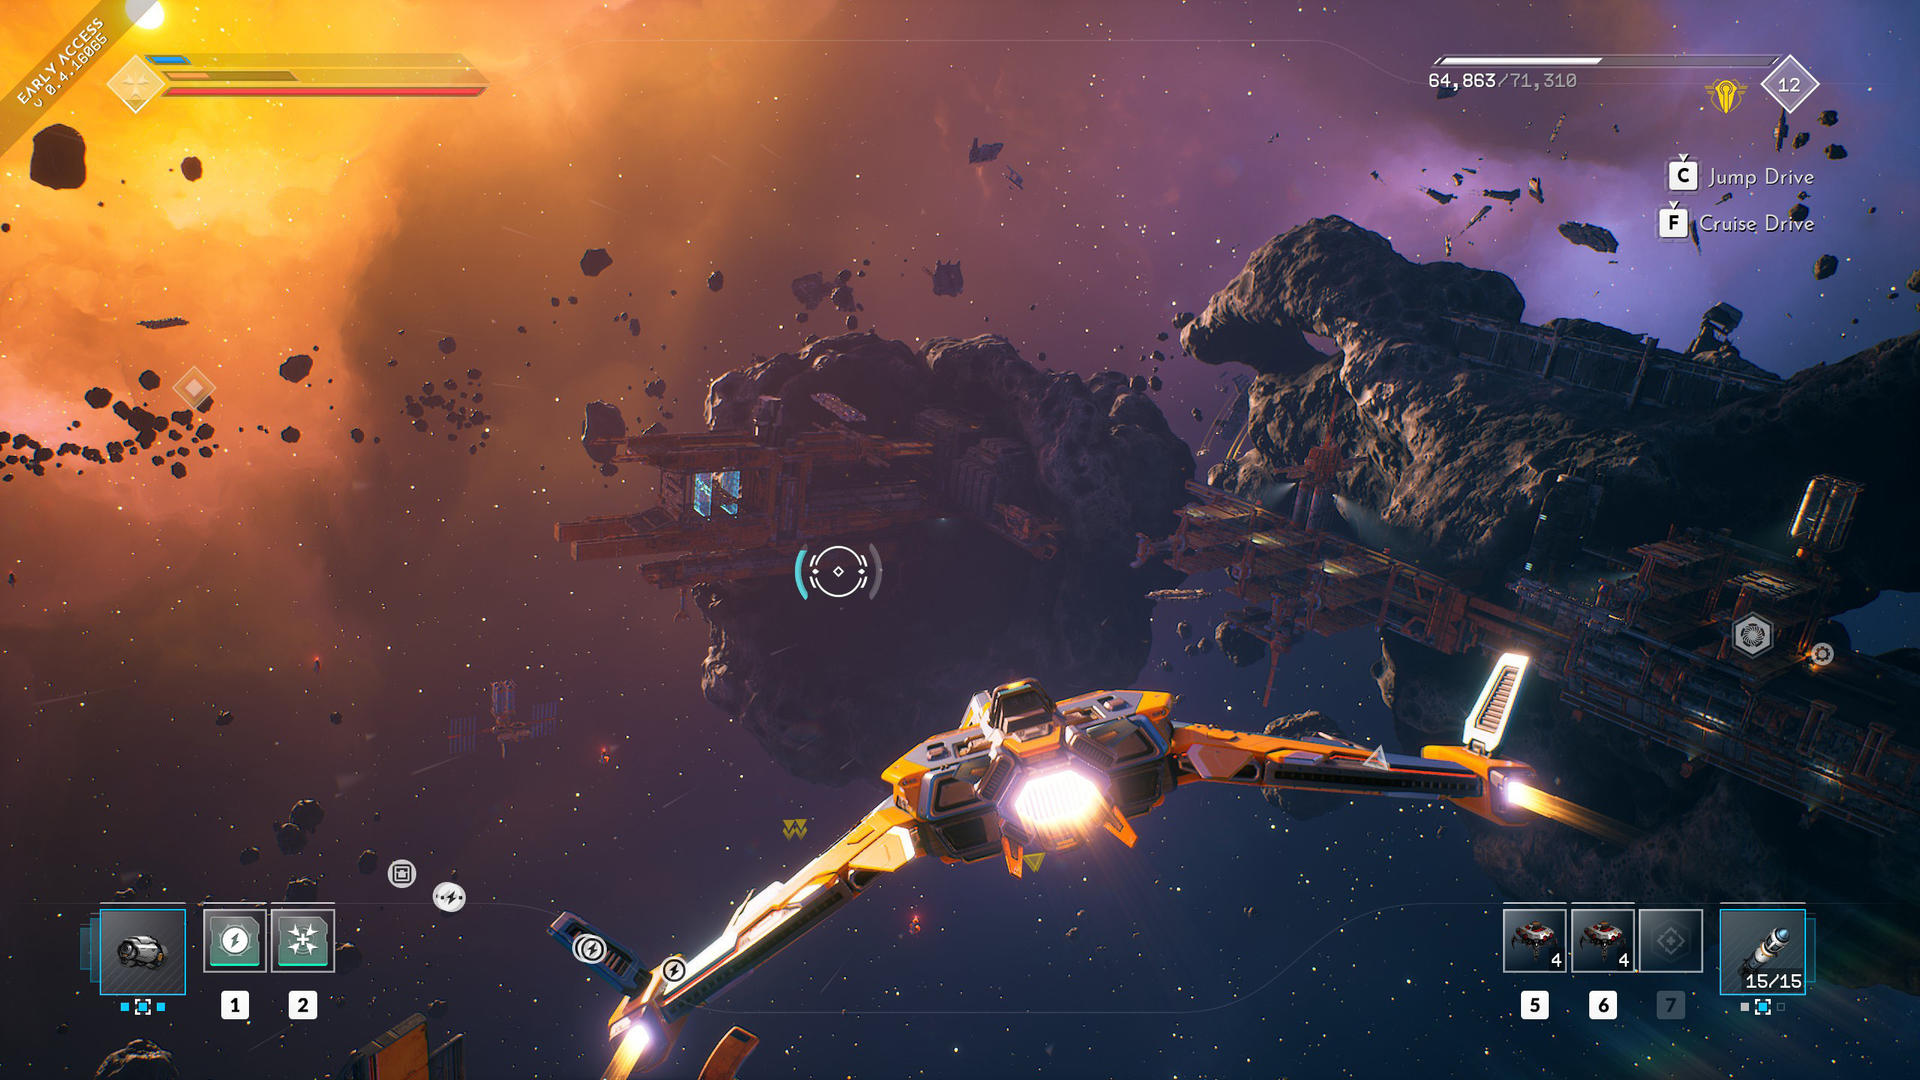 Everspace 2 was launched early